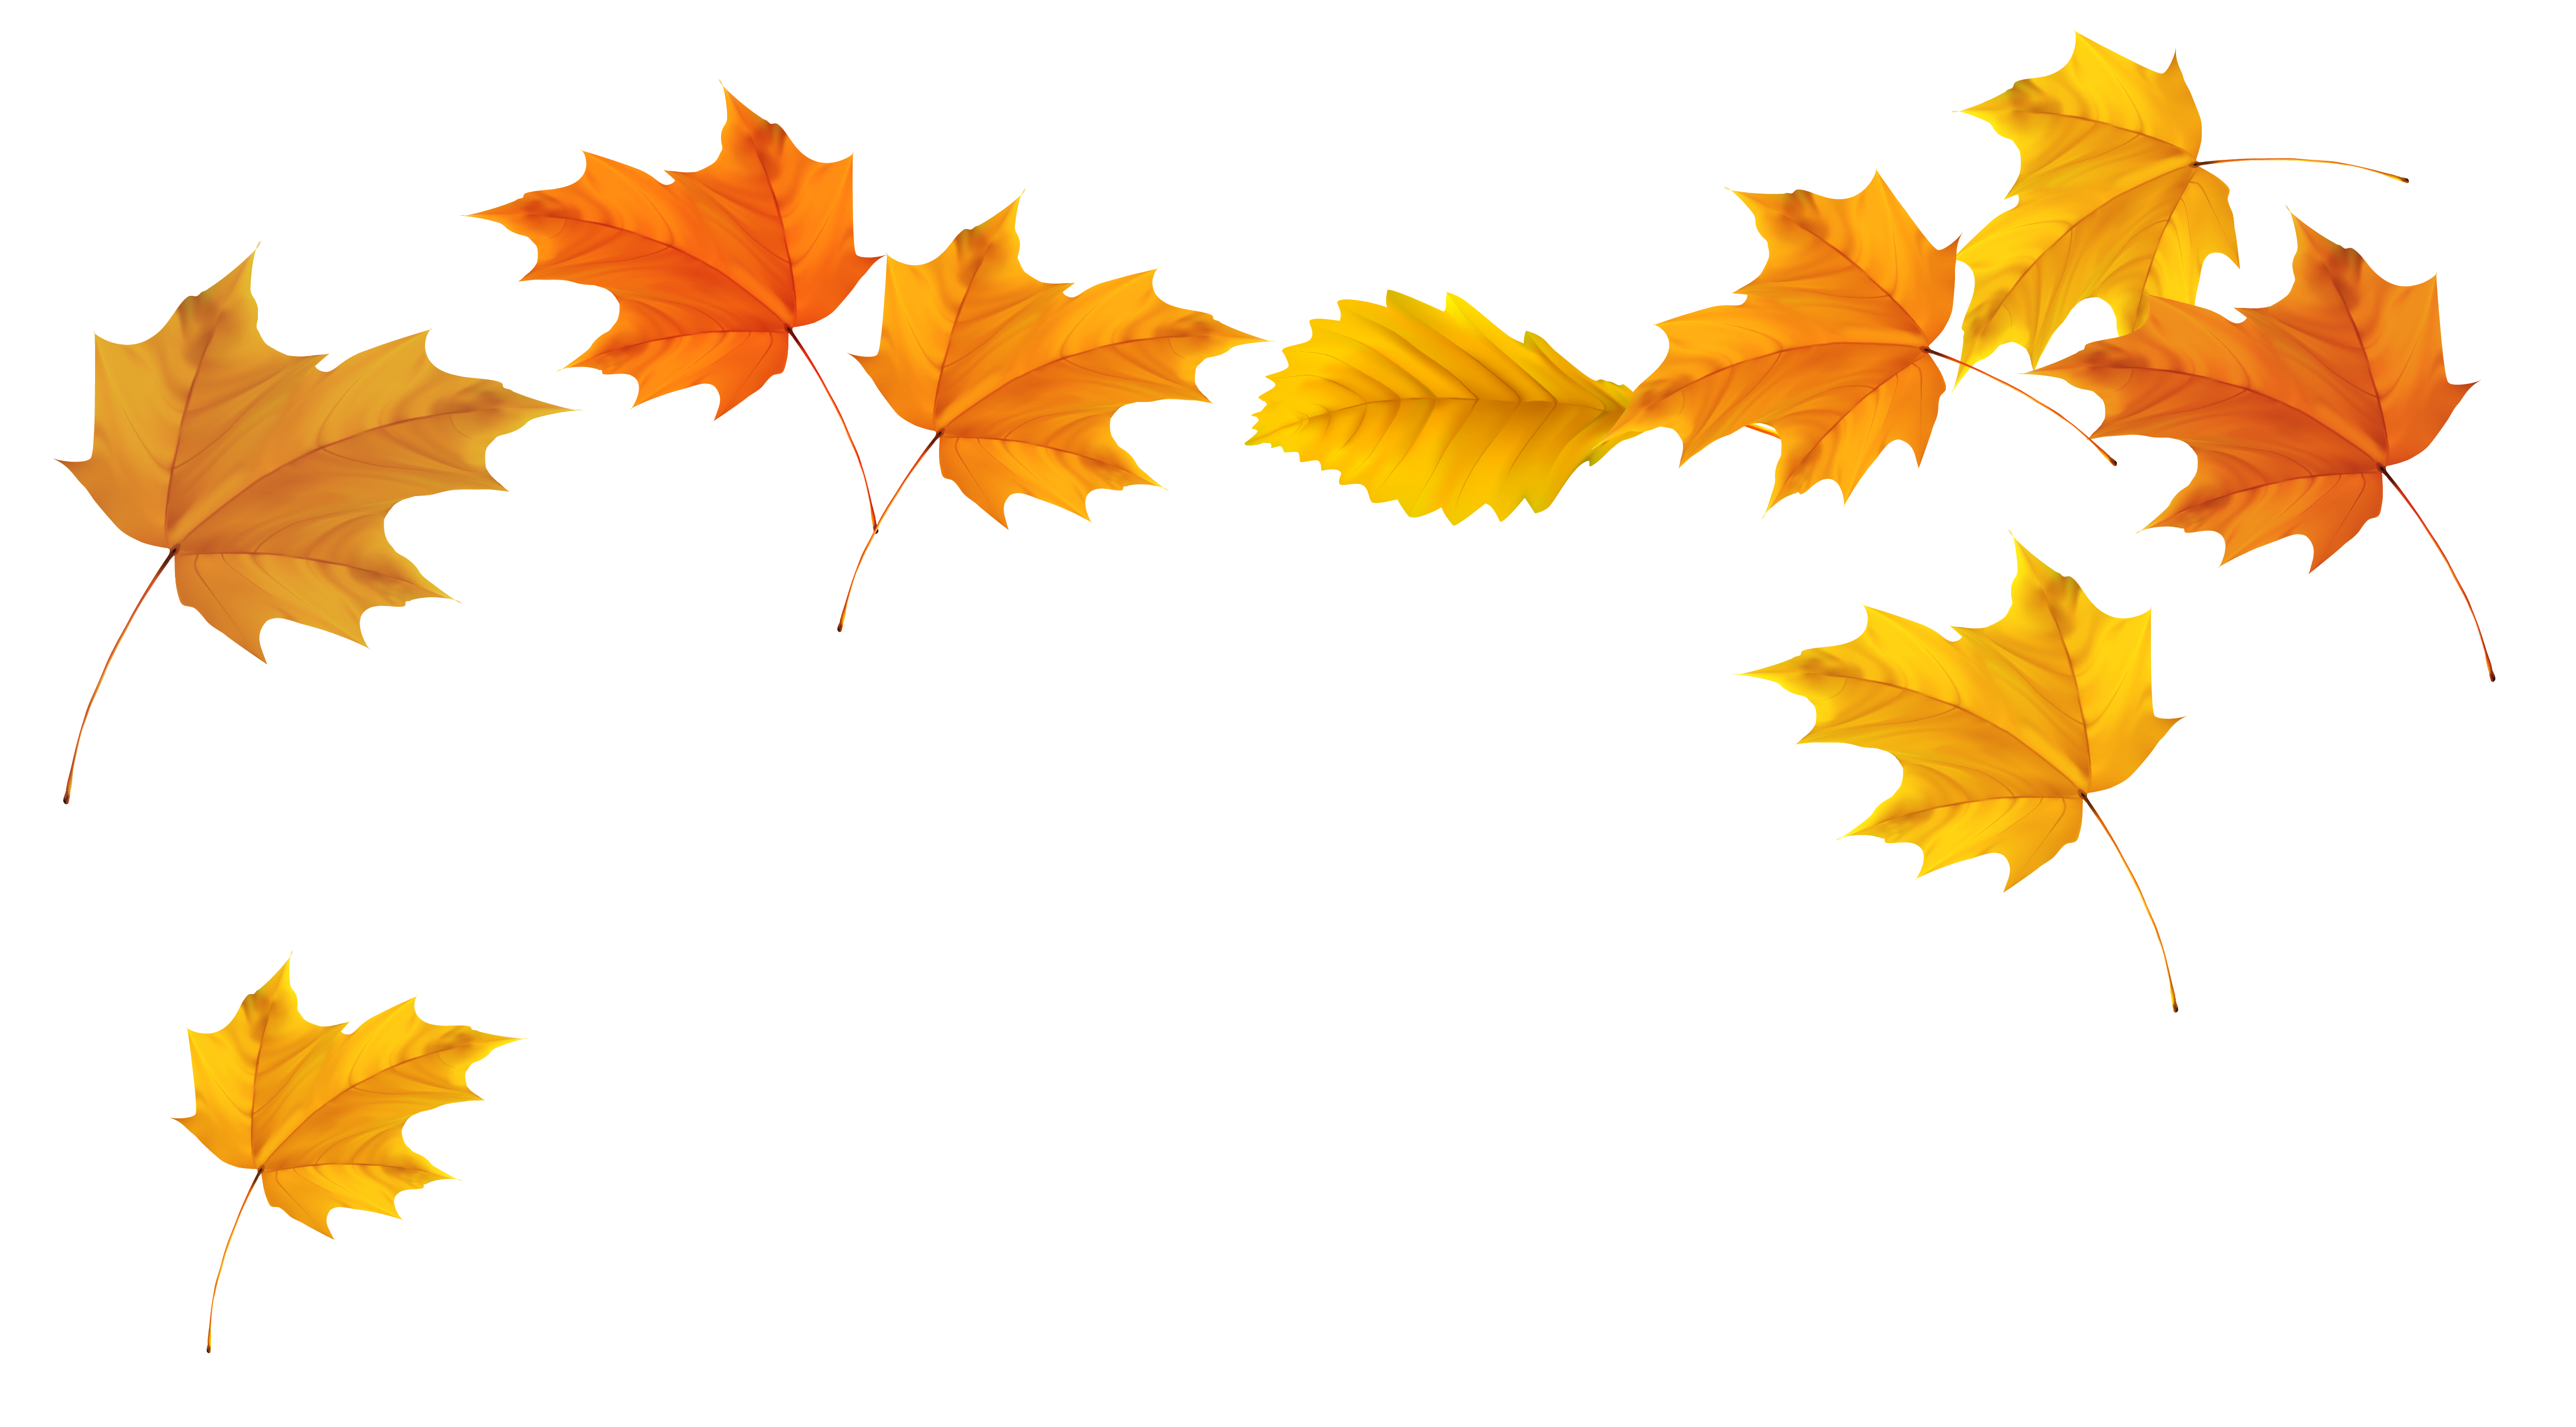 Wind clipart falling leave Images falling leaves free clipartcow